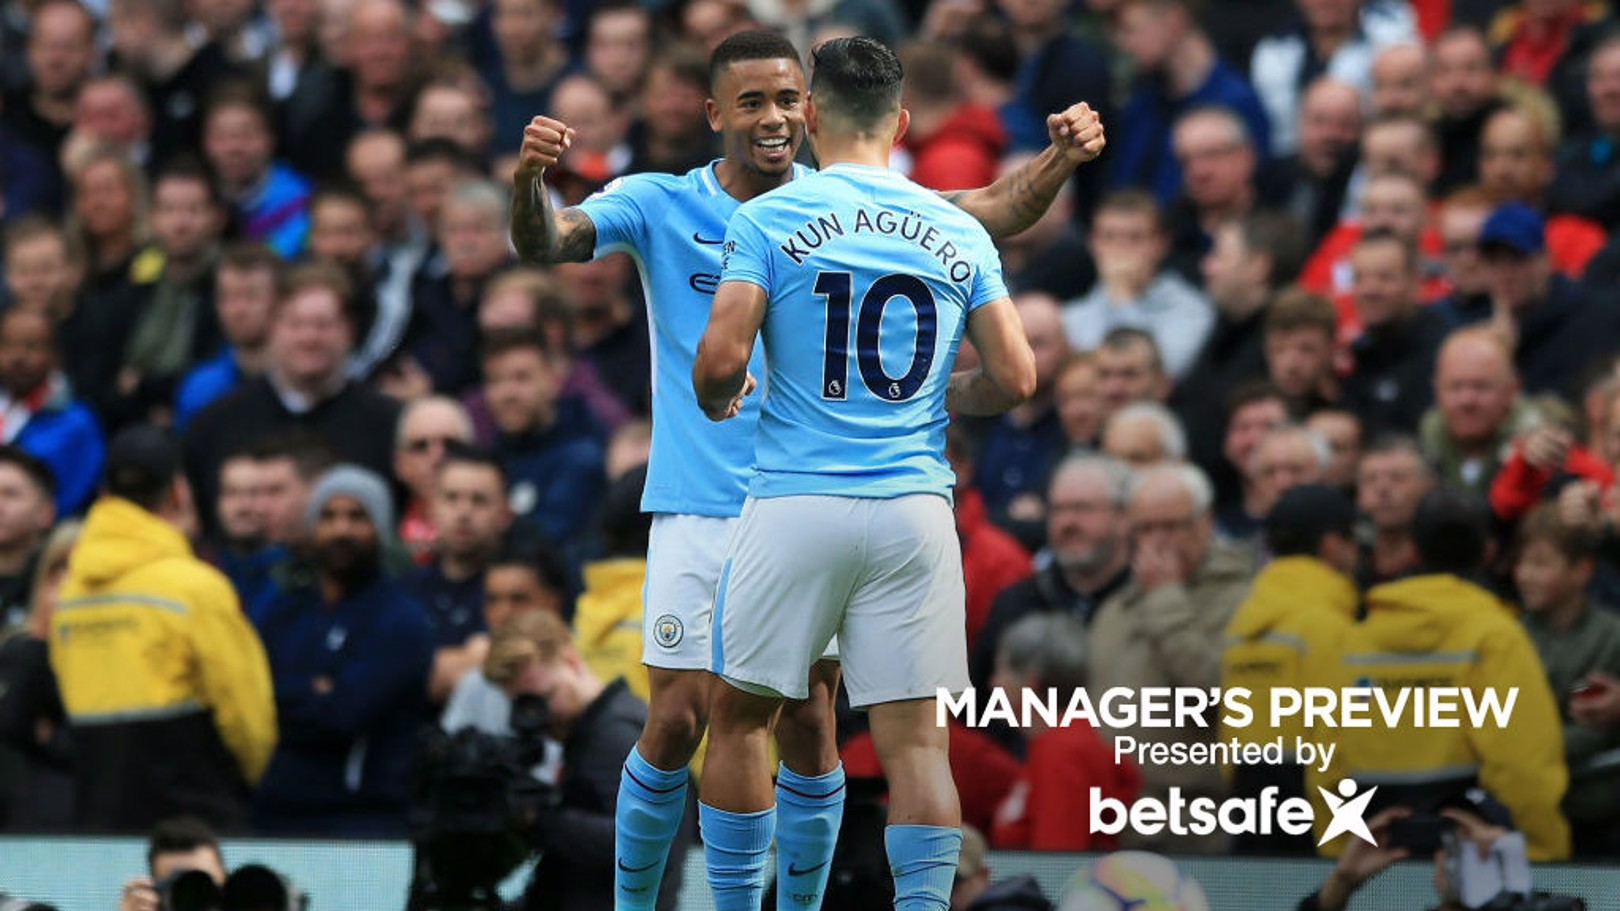 PERFECT PAIR: Sergio Aguero and Gabriel Jesus are forging an effective partnership.